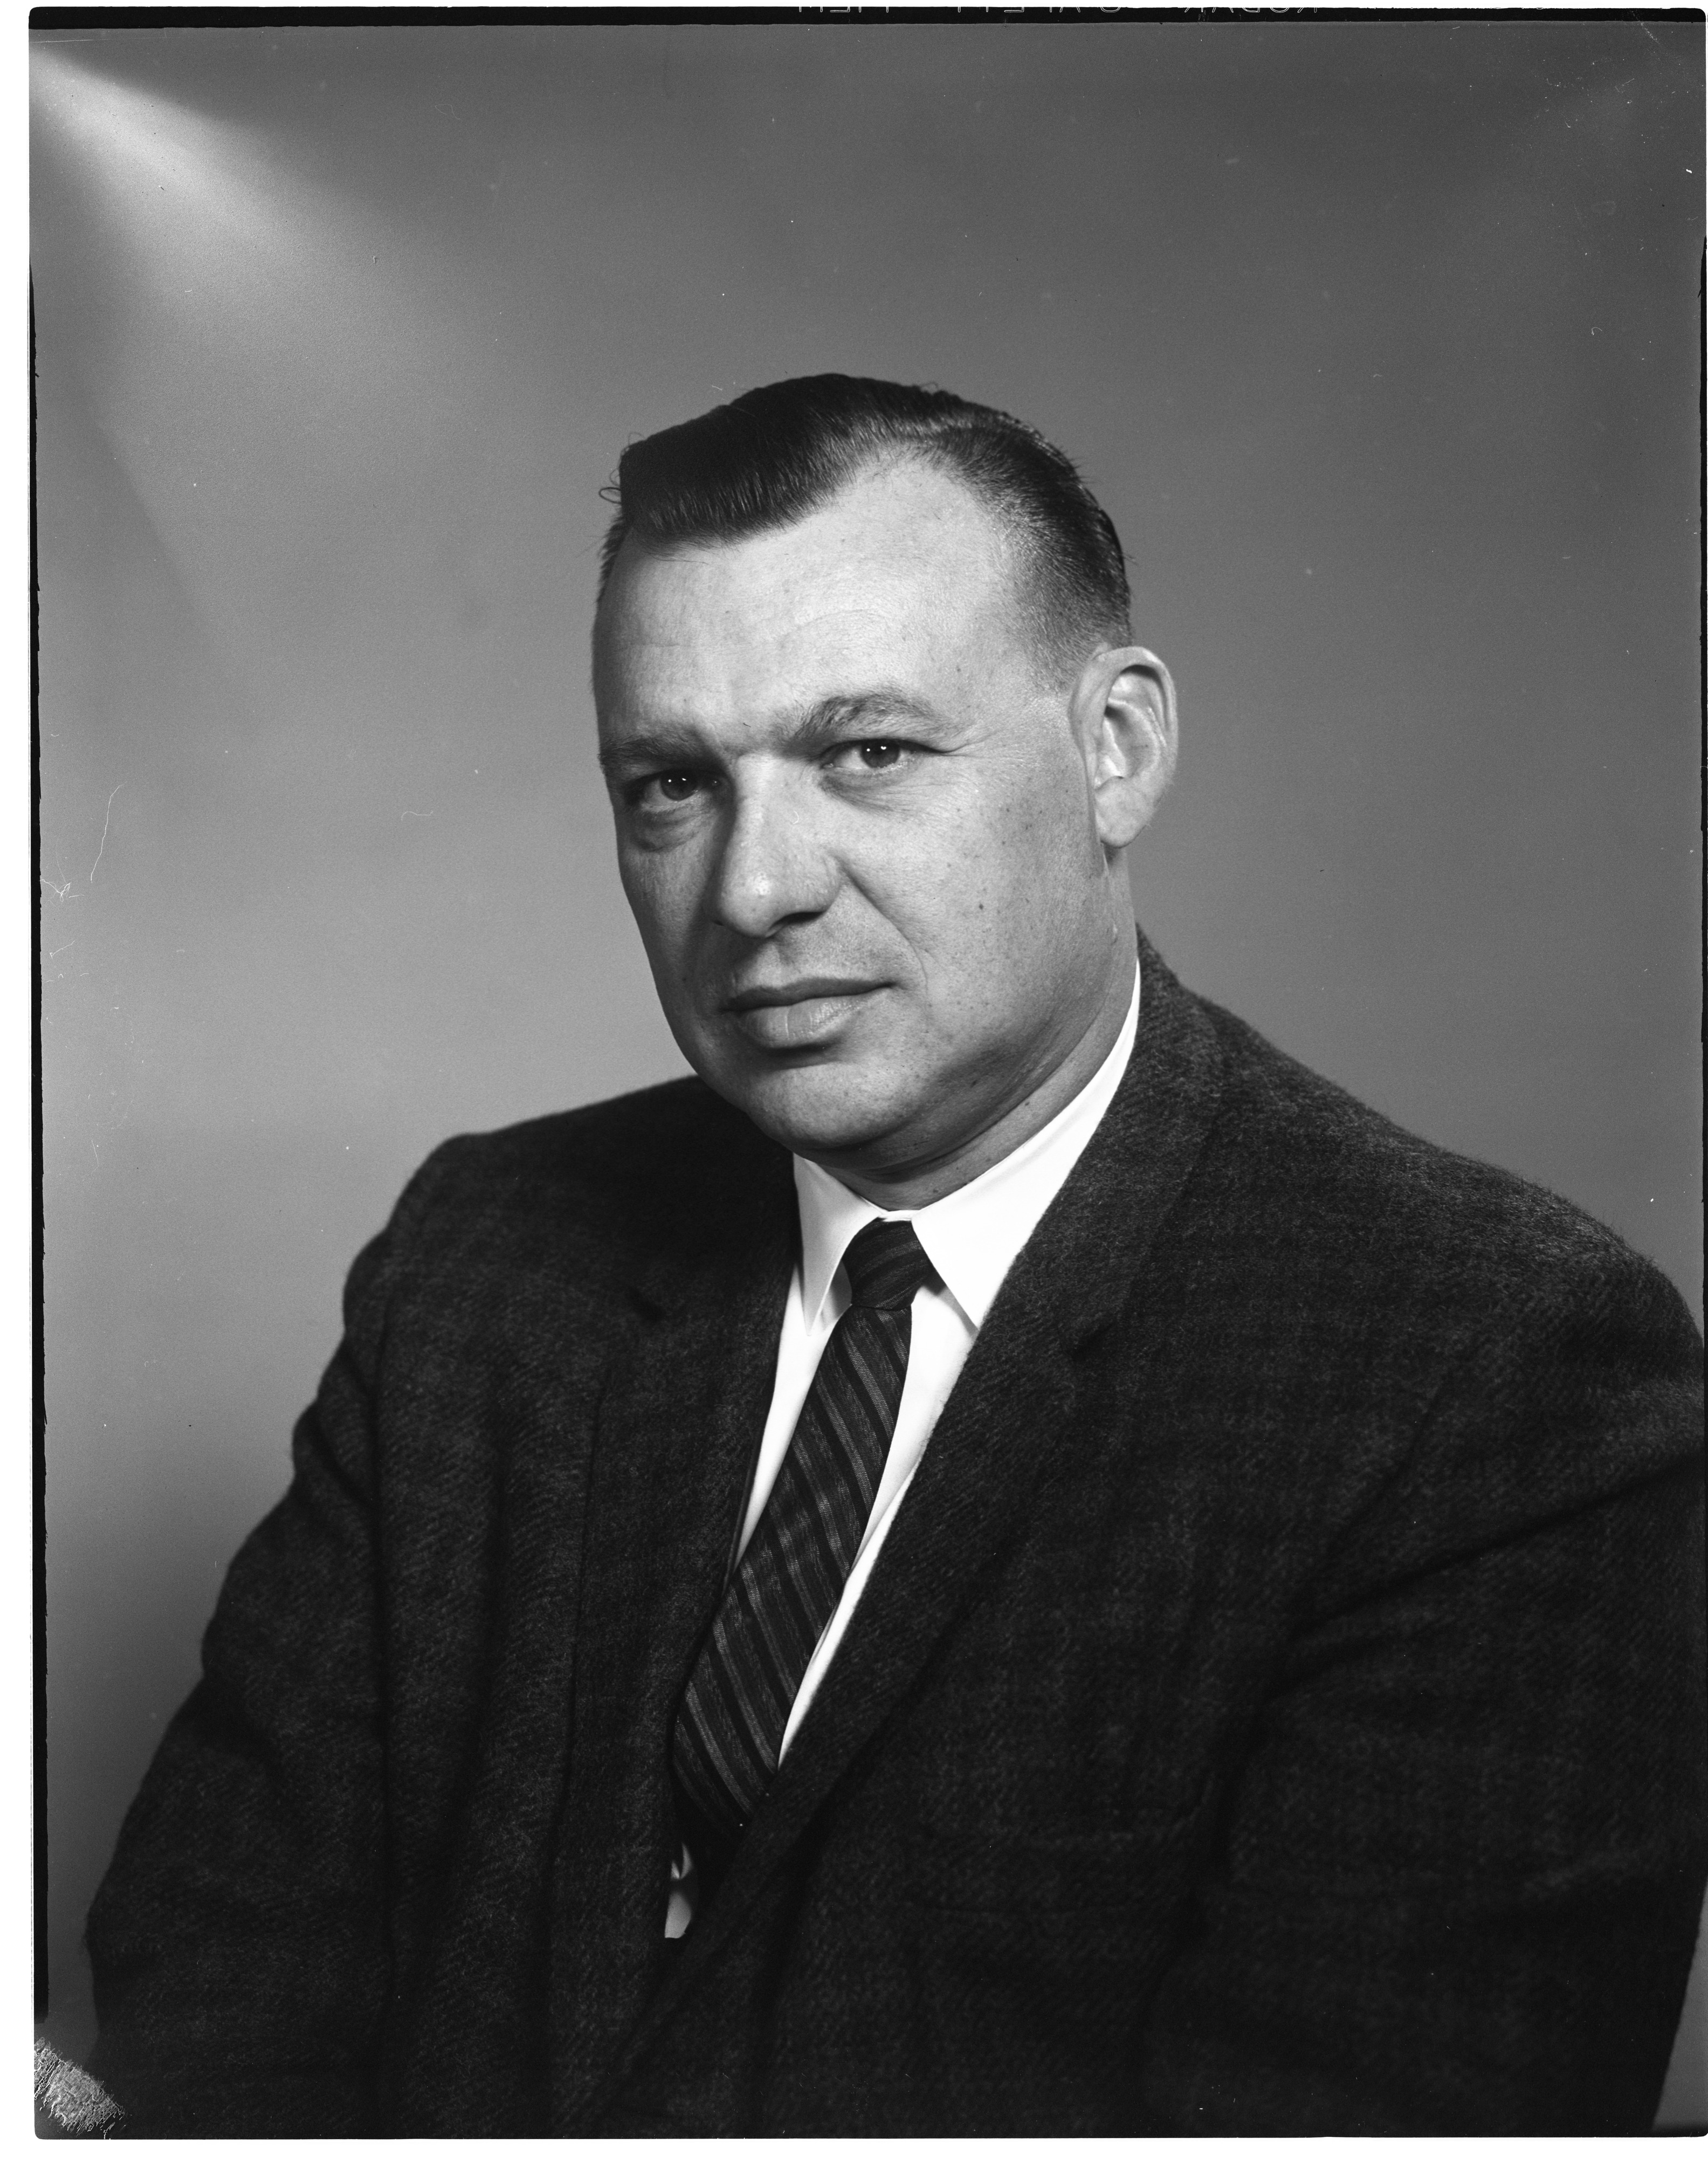 Philip Kratzmiller - Newly Elected Ann Arbor Lions Club President, May 1964 image